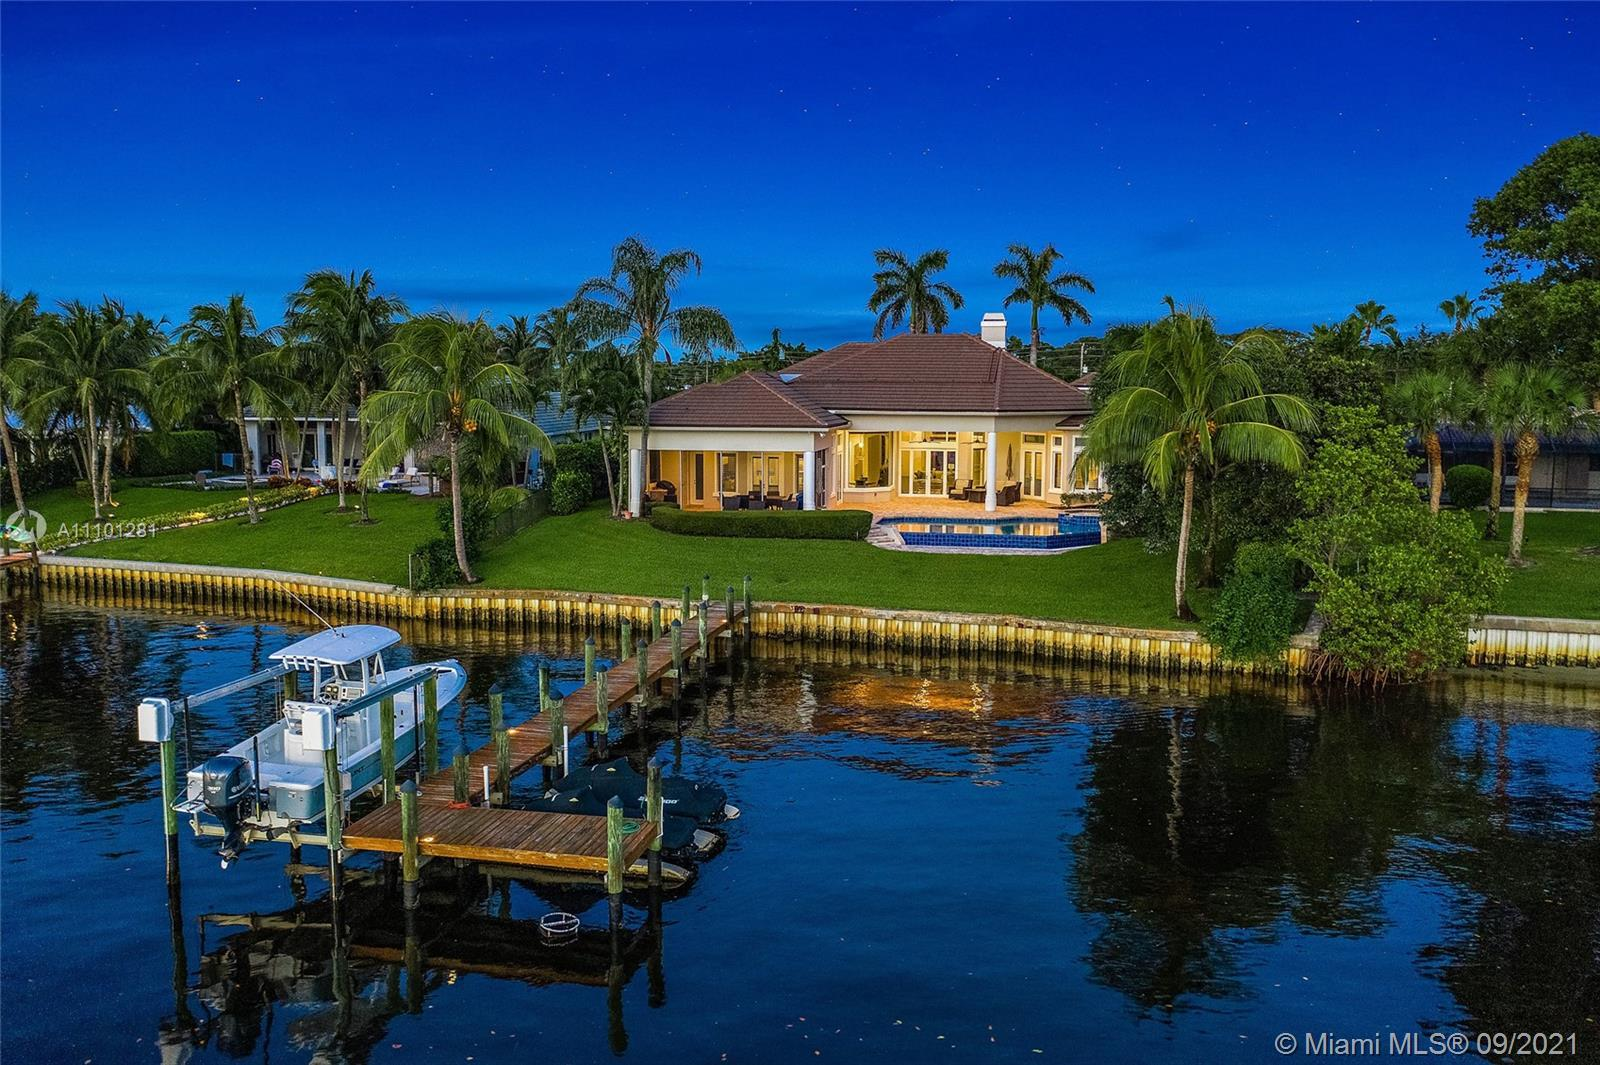 River living at its best! This home is located on the widest part of the Loxahatchee River in the de